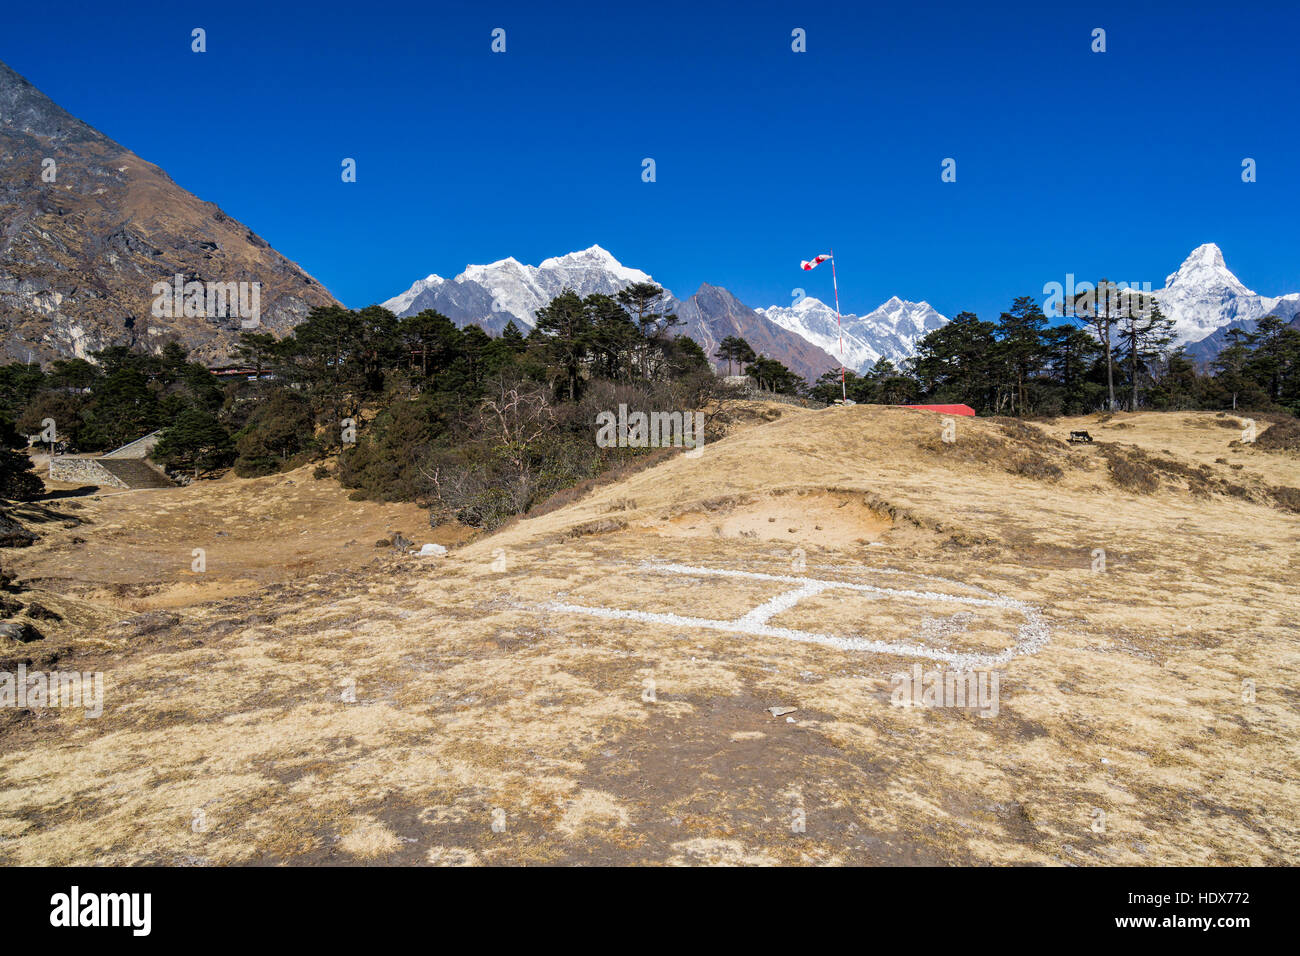 The heli pad of Everest View Hotel, located high above Namche Bazar on 3900m altitude - Stock Image